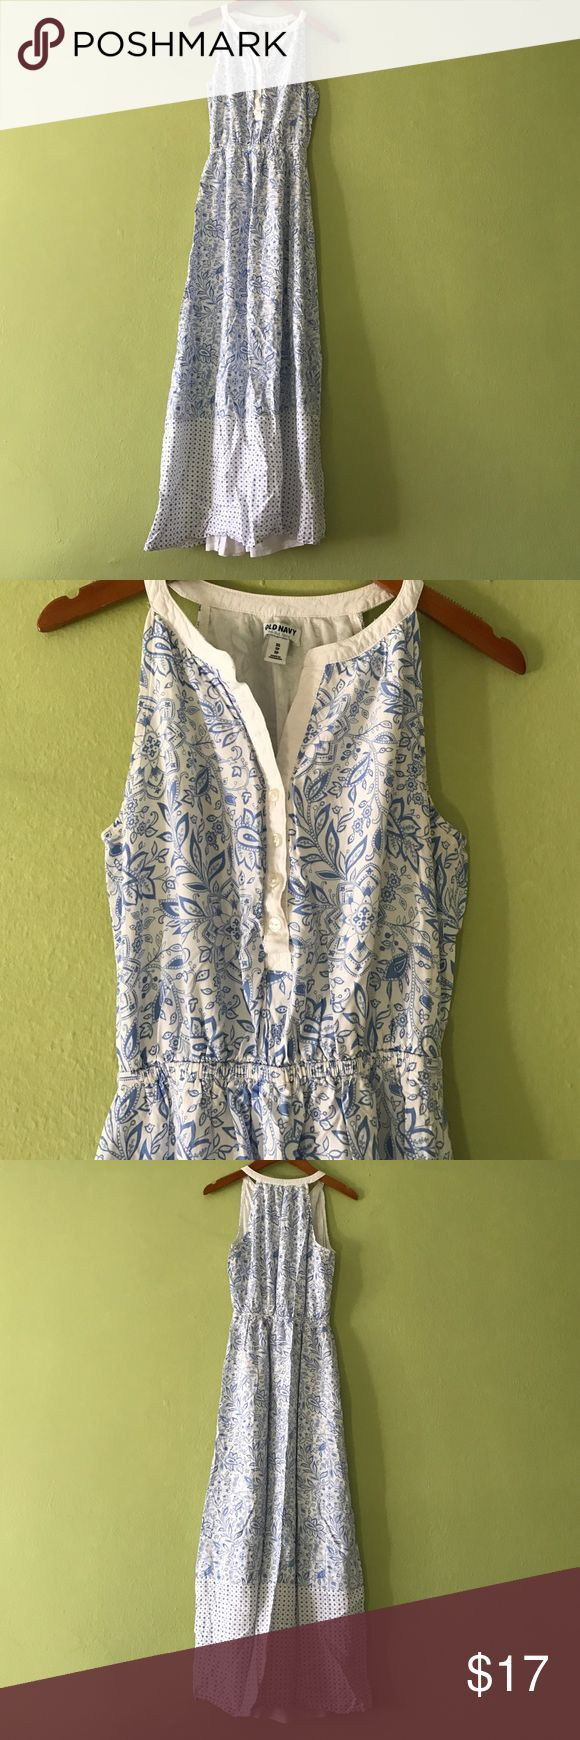 🌎Fabulous Old Navy Maxi Dress This Beautiful Maxi dress is from Old Navy Brand and in fair Condition with normal wear. No Trade, but please fee free to use offer button. Old Navy Dresses Maxi